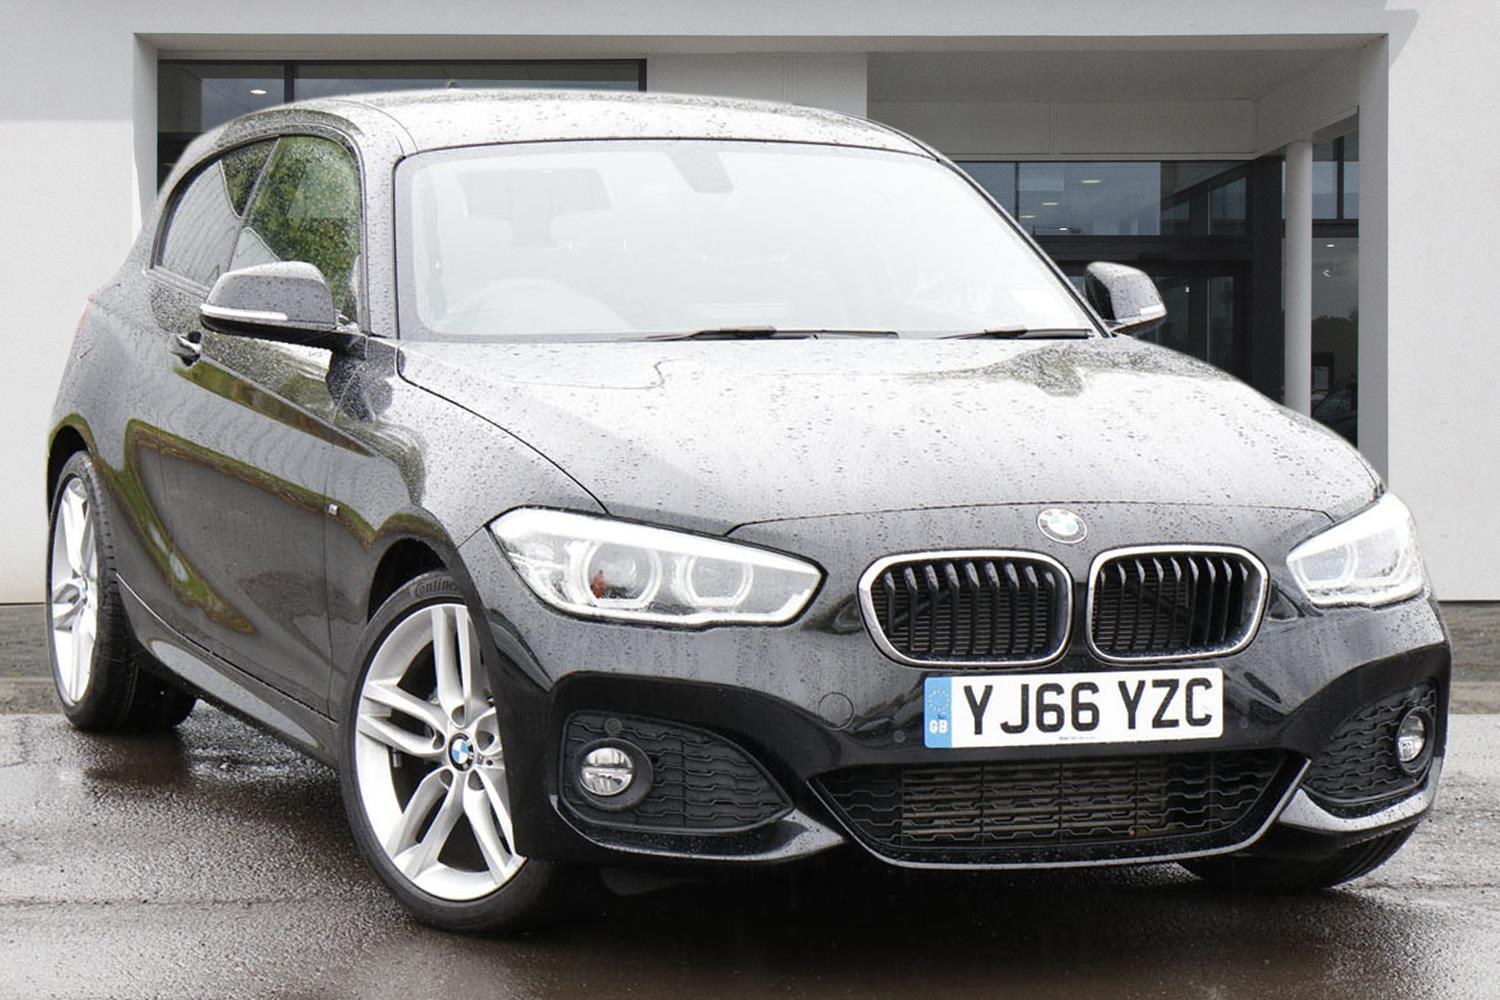 BMW 1 Series 3-door Sports Hatch YJ66YZC - Image 9